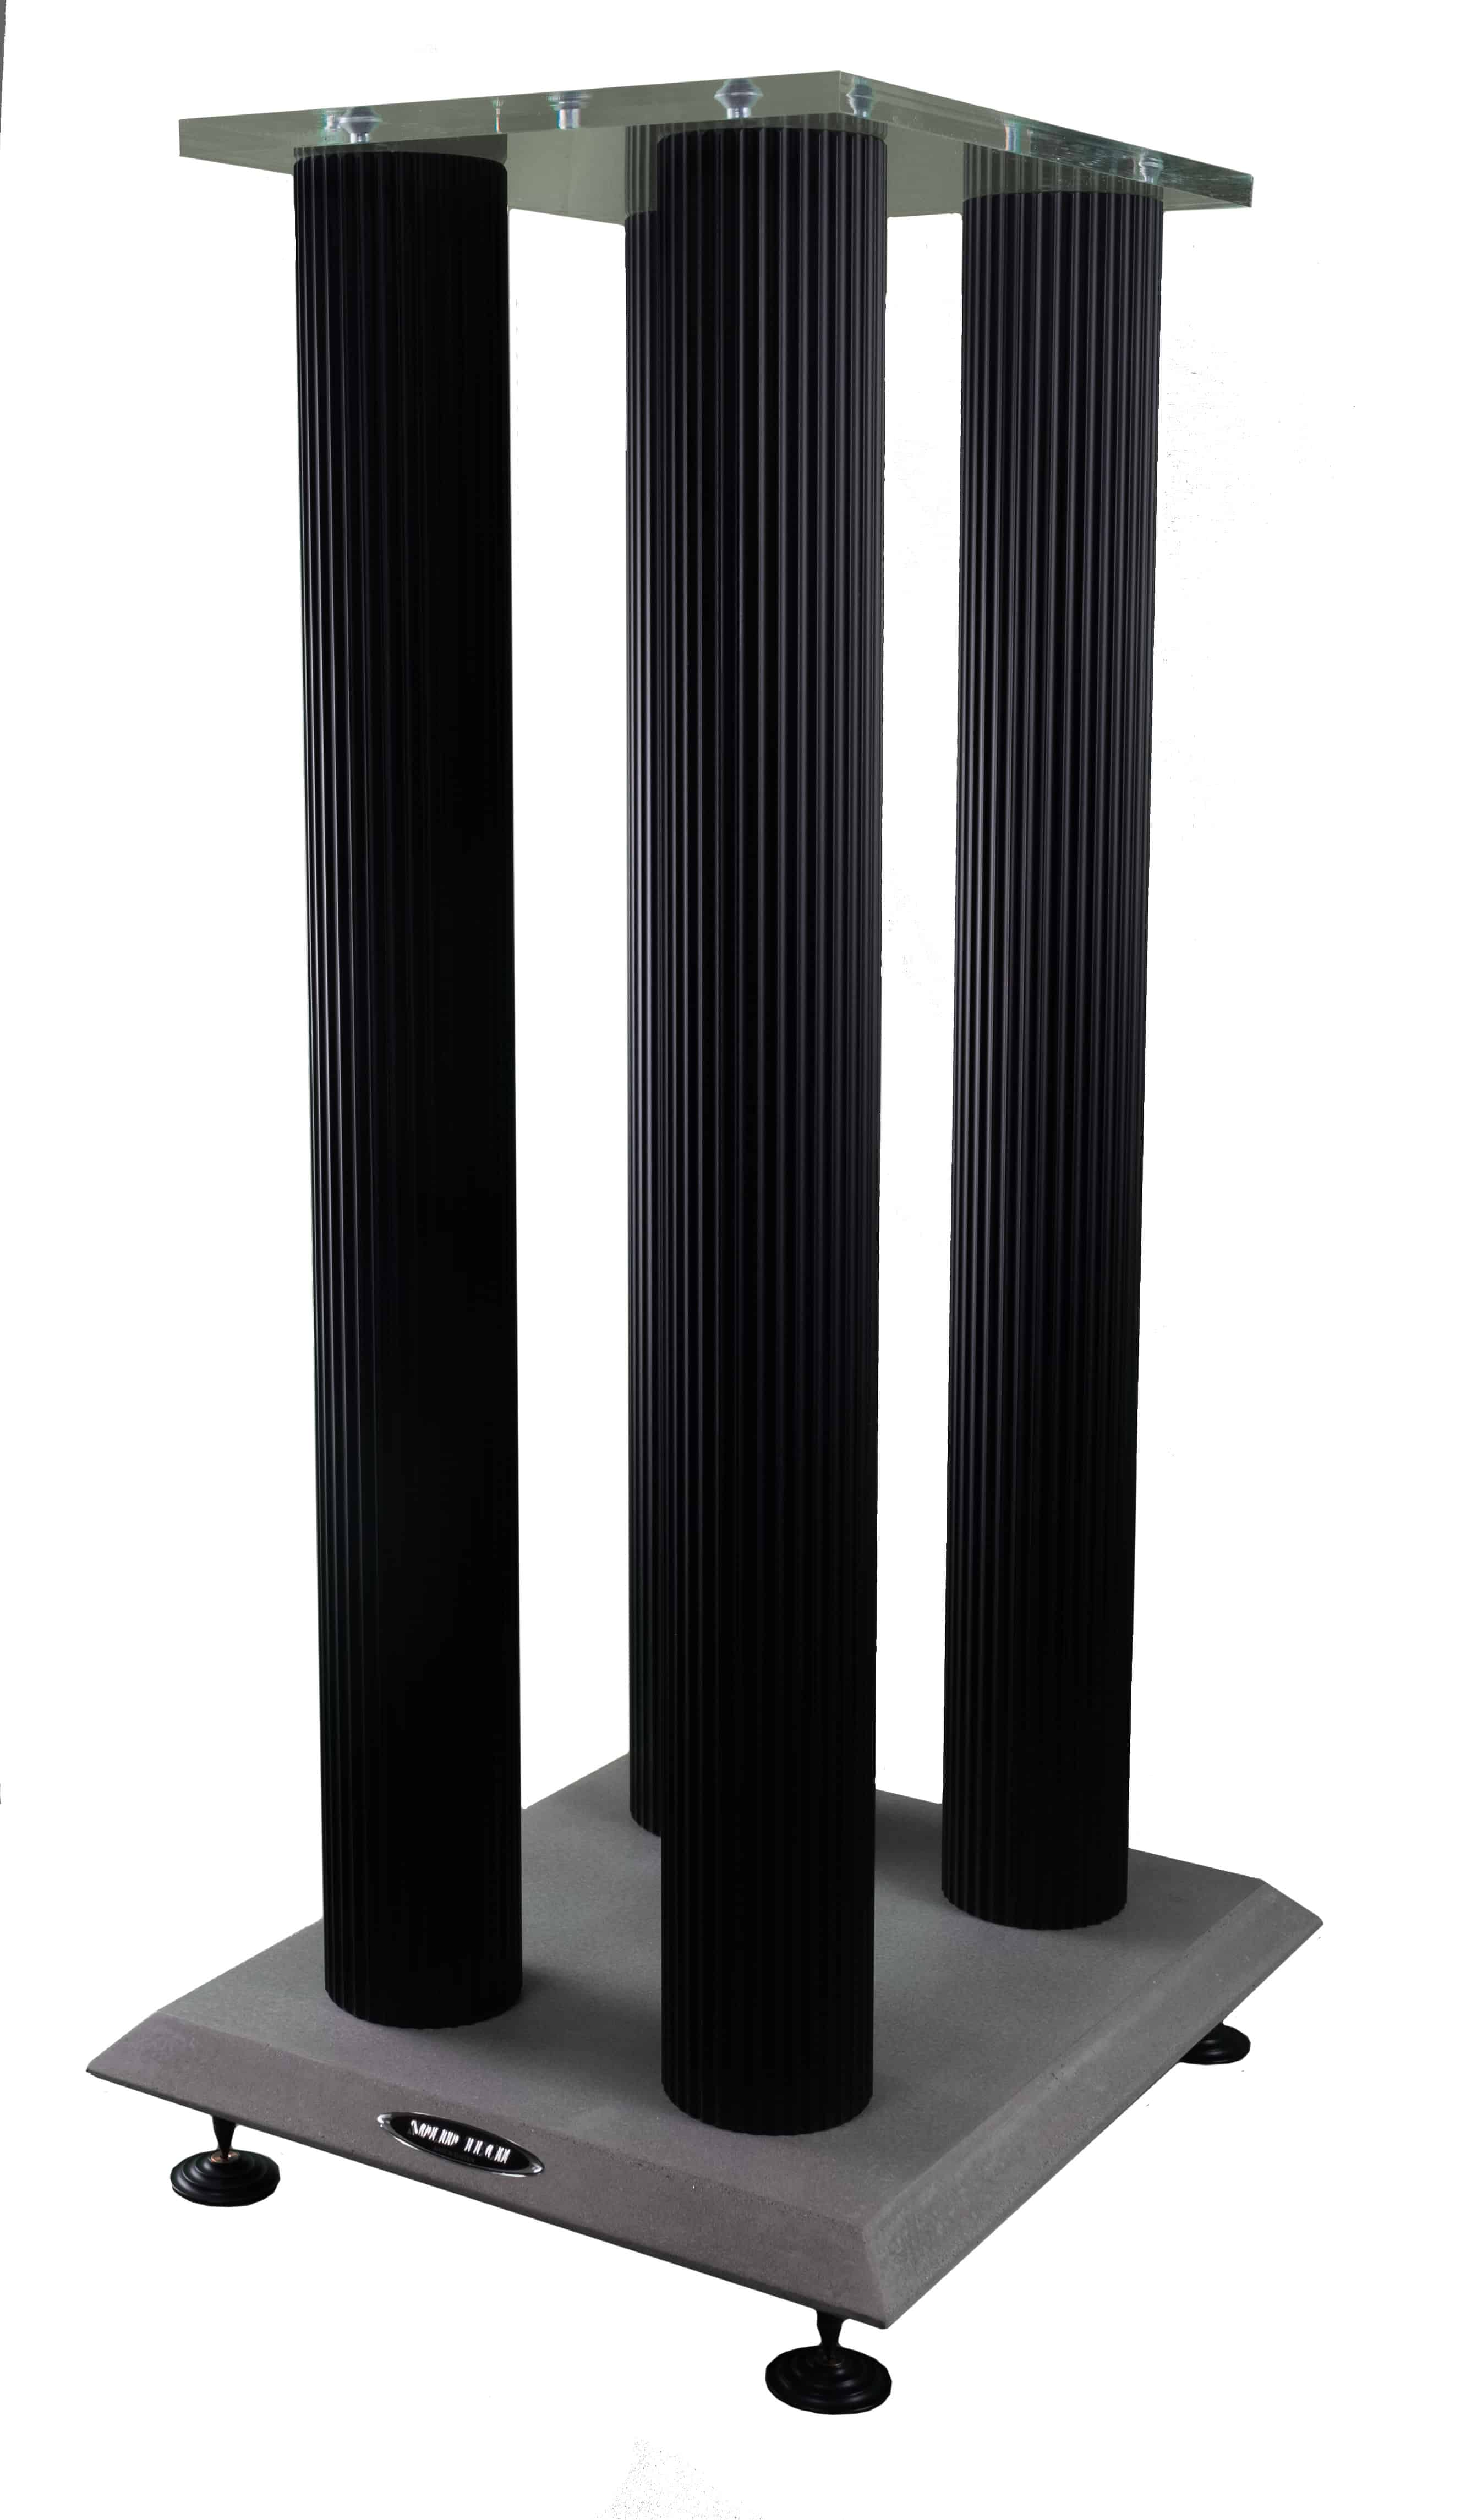 Speaker stand concrete footy and black anodized pillars Image